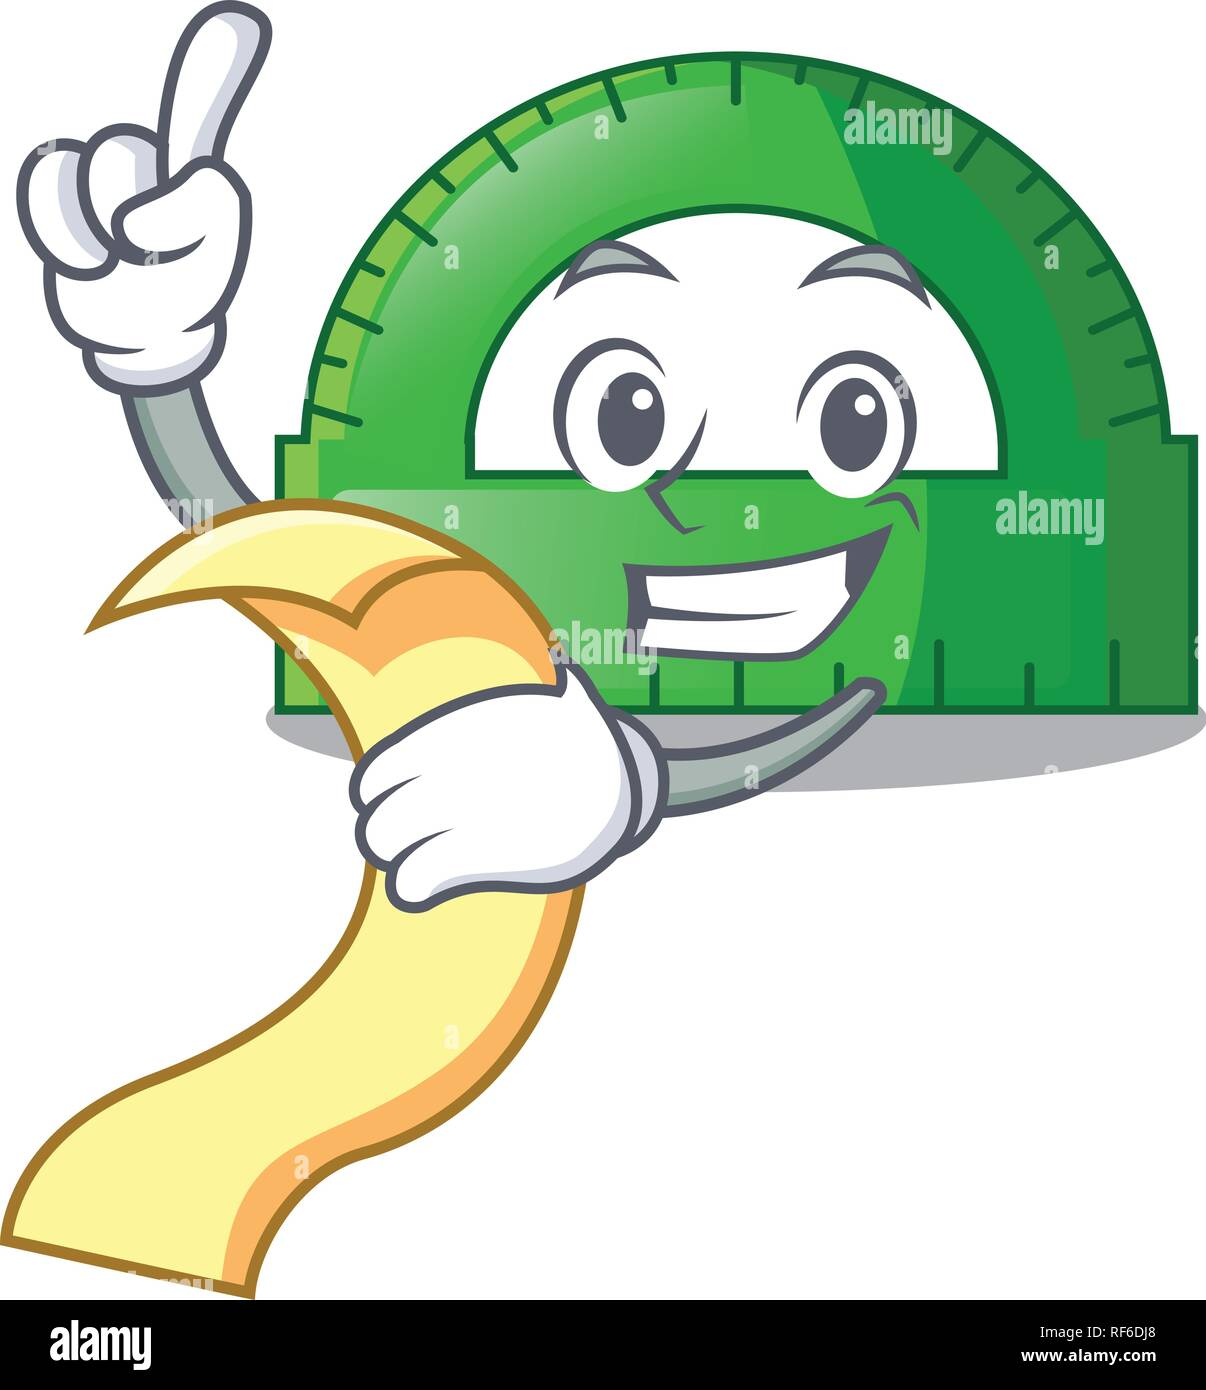 With menu protractor on a the mascot table - Stock Image